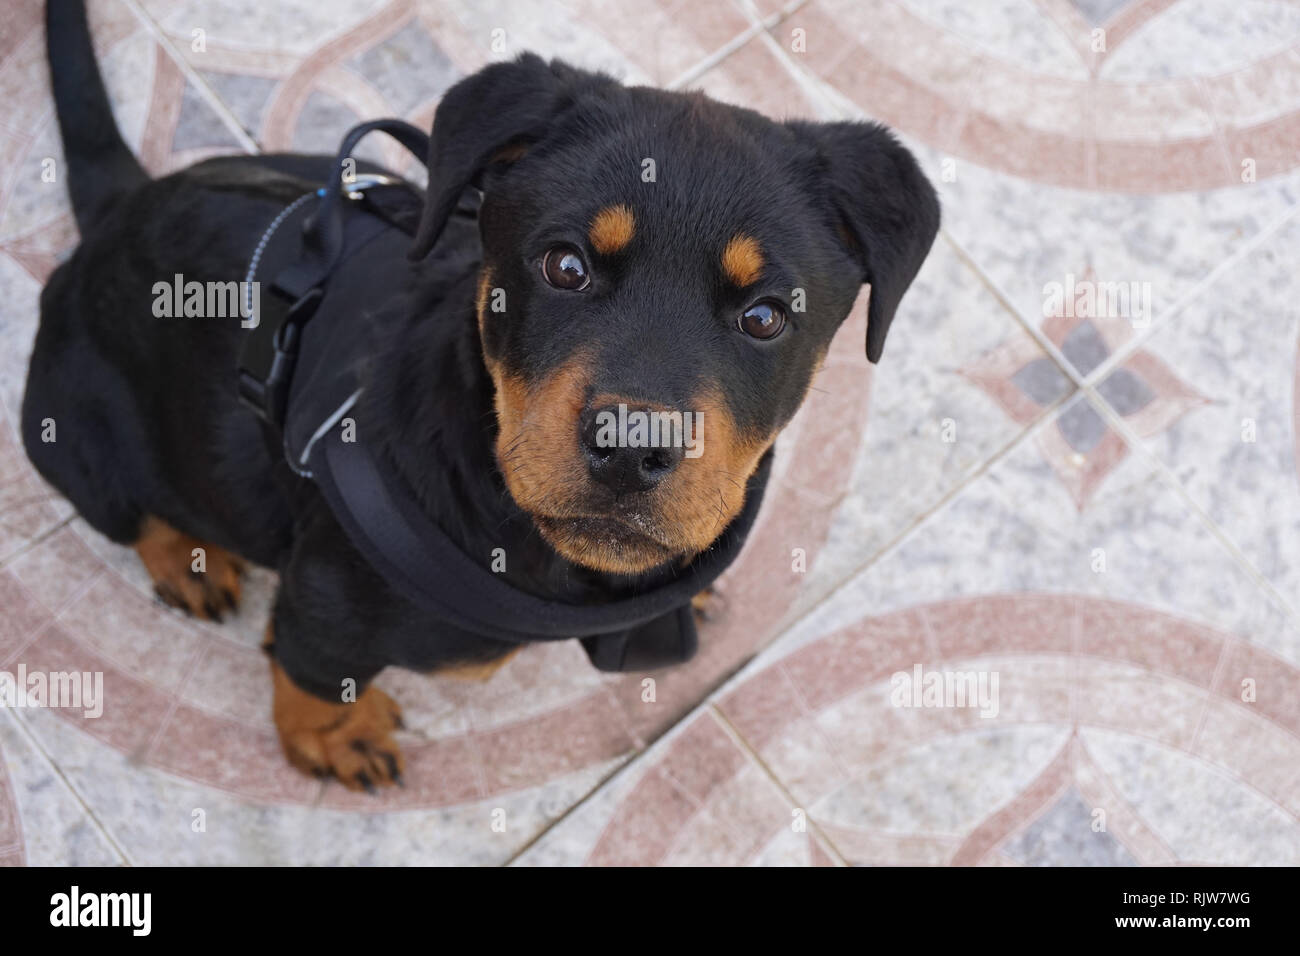 A very professional dog who loves to pose - Stock Image